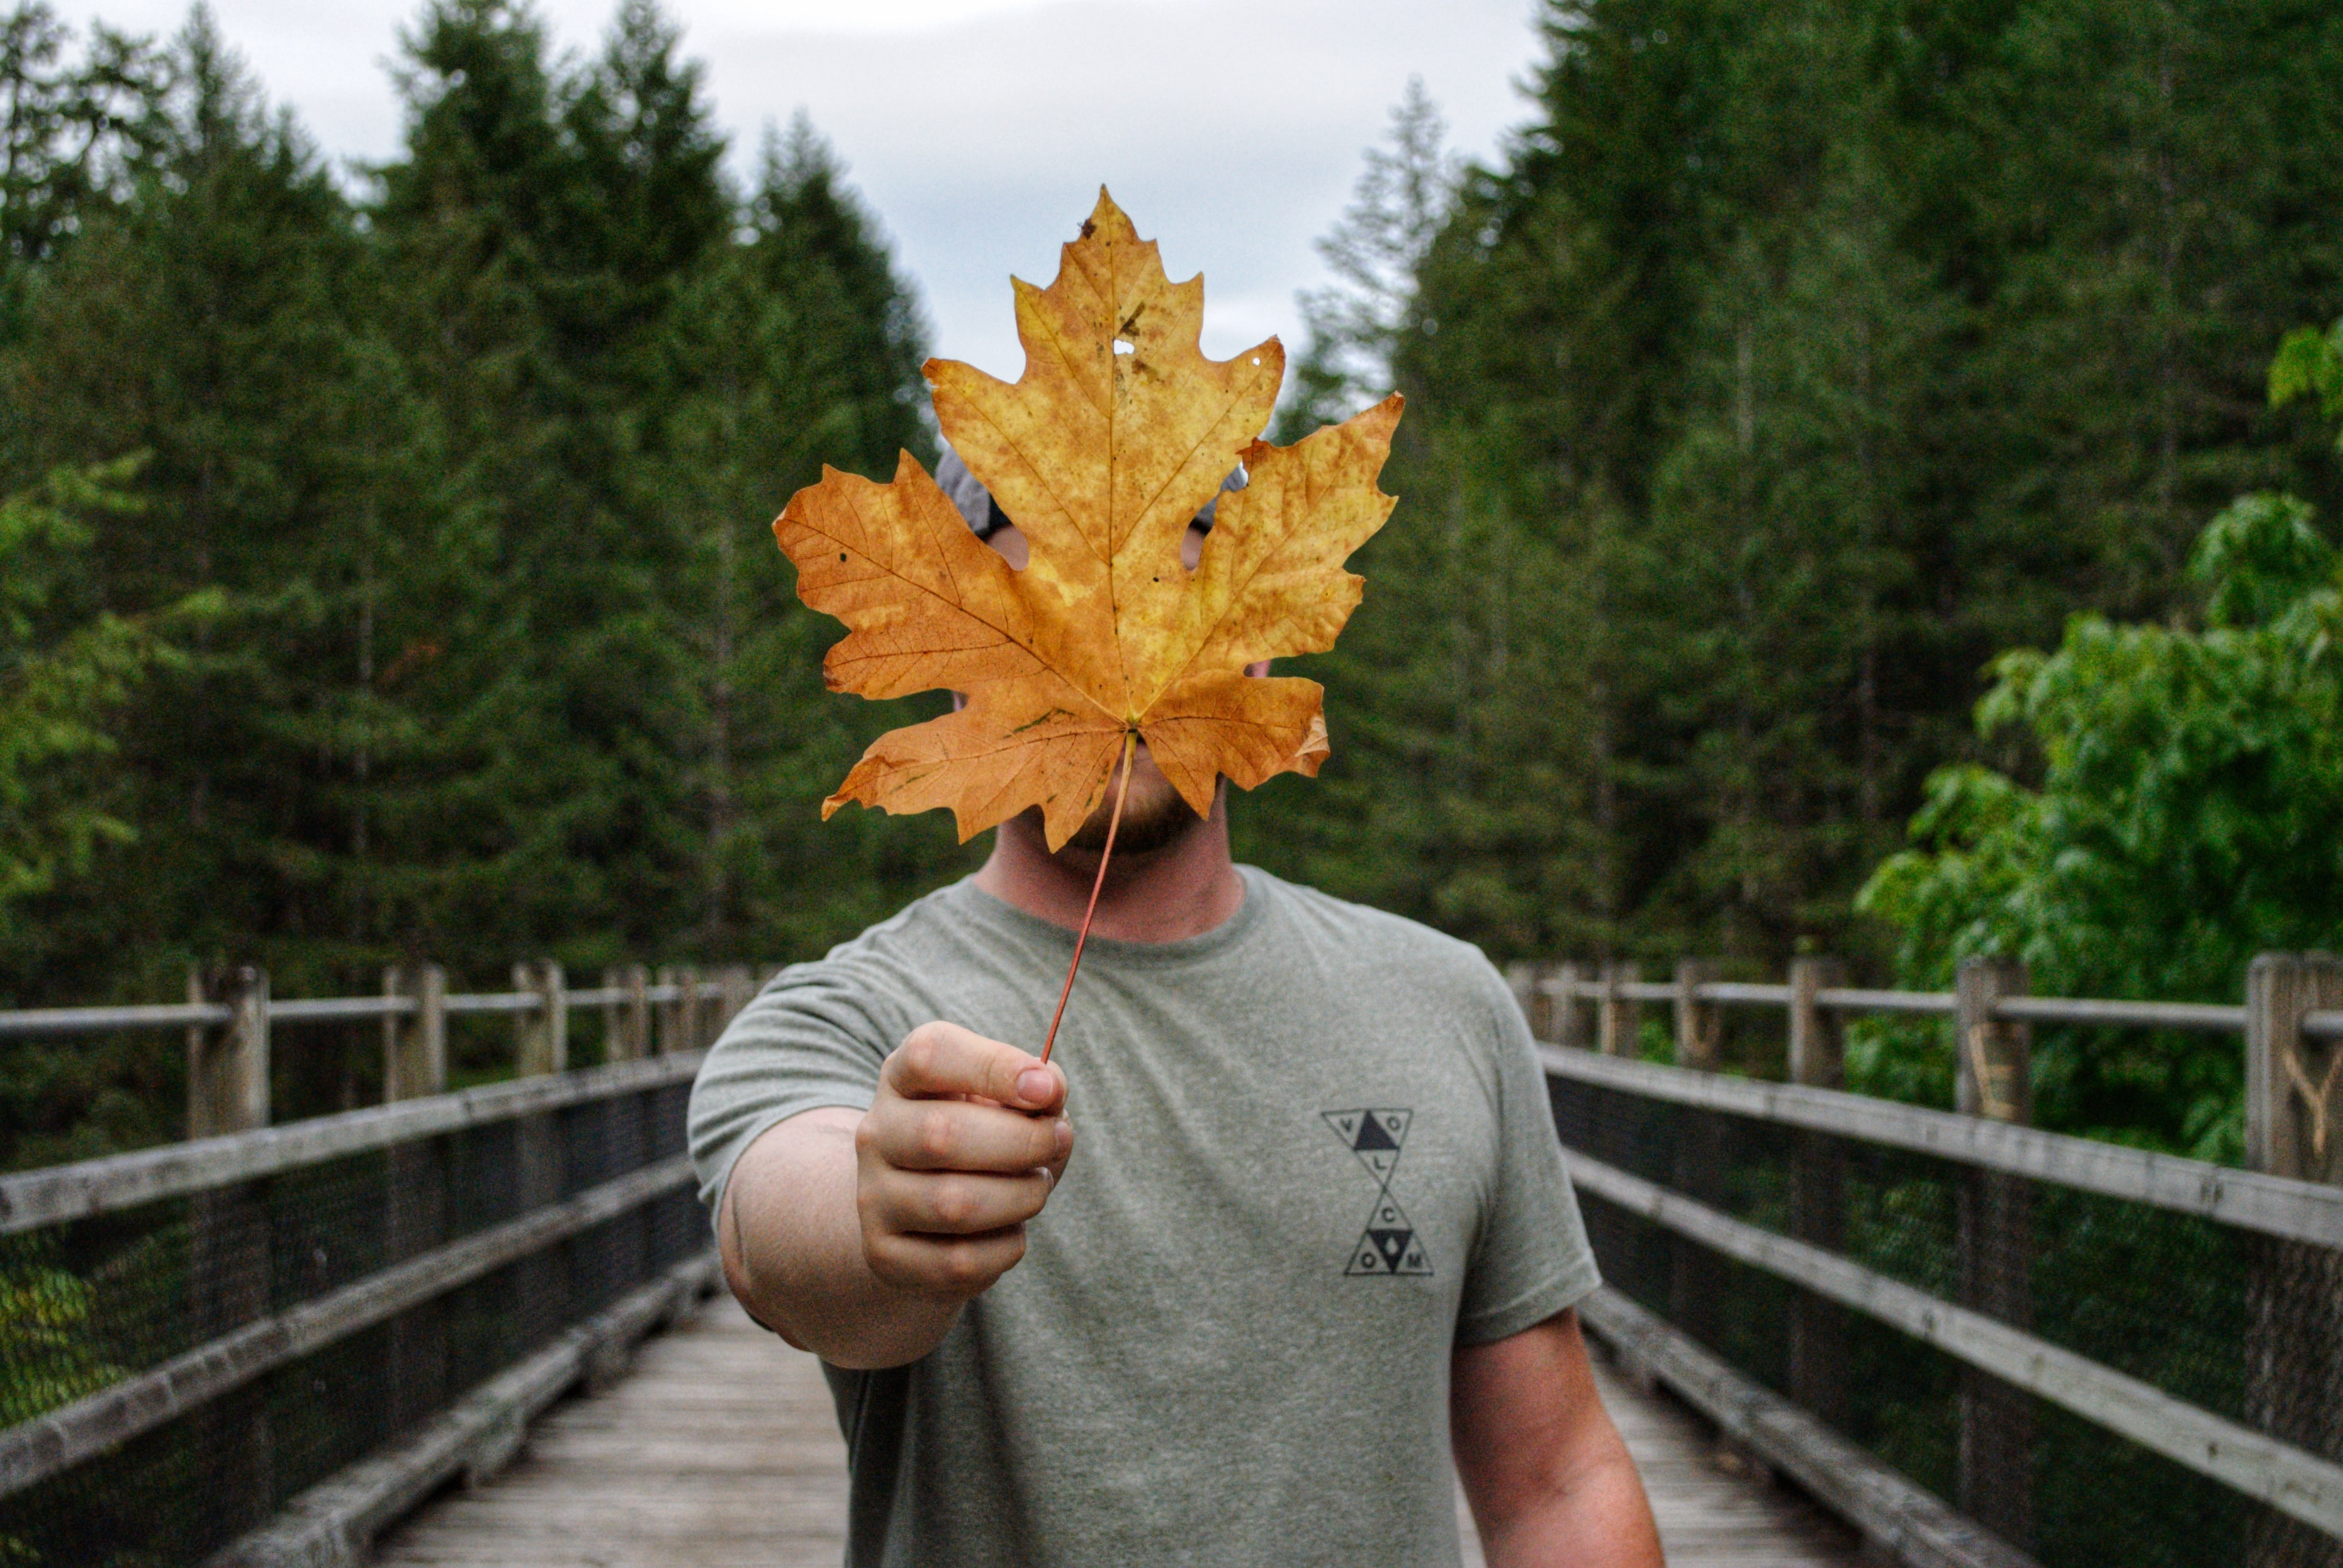 man in grey shirt holding brown leaf